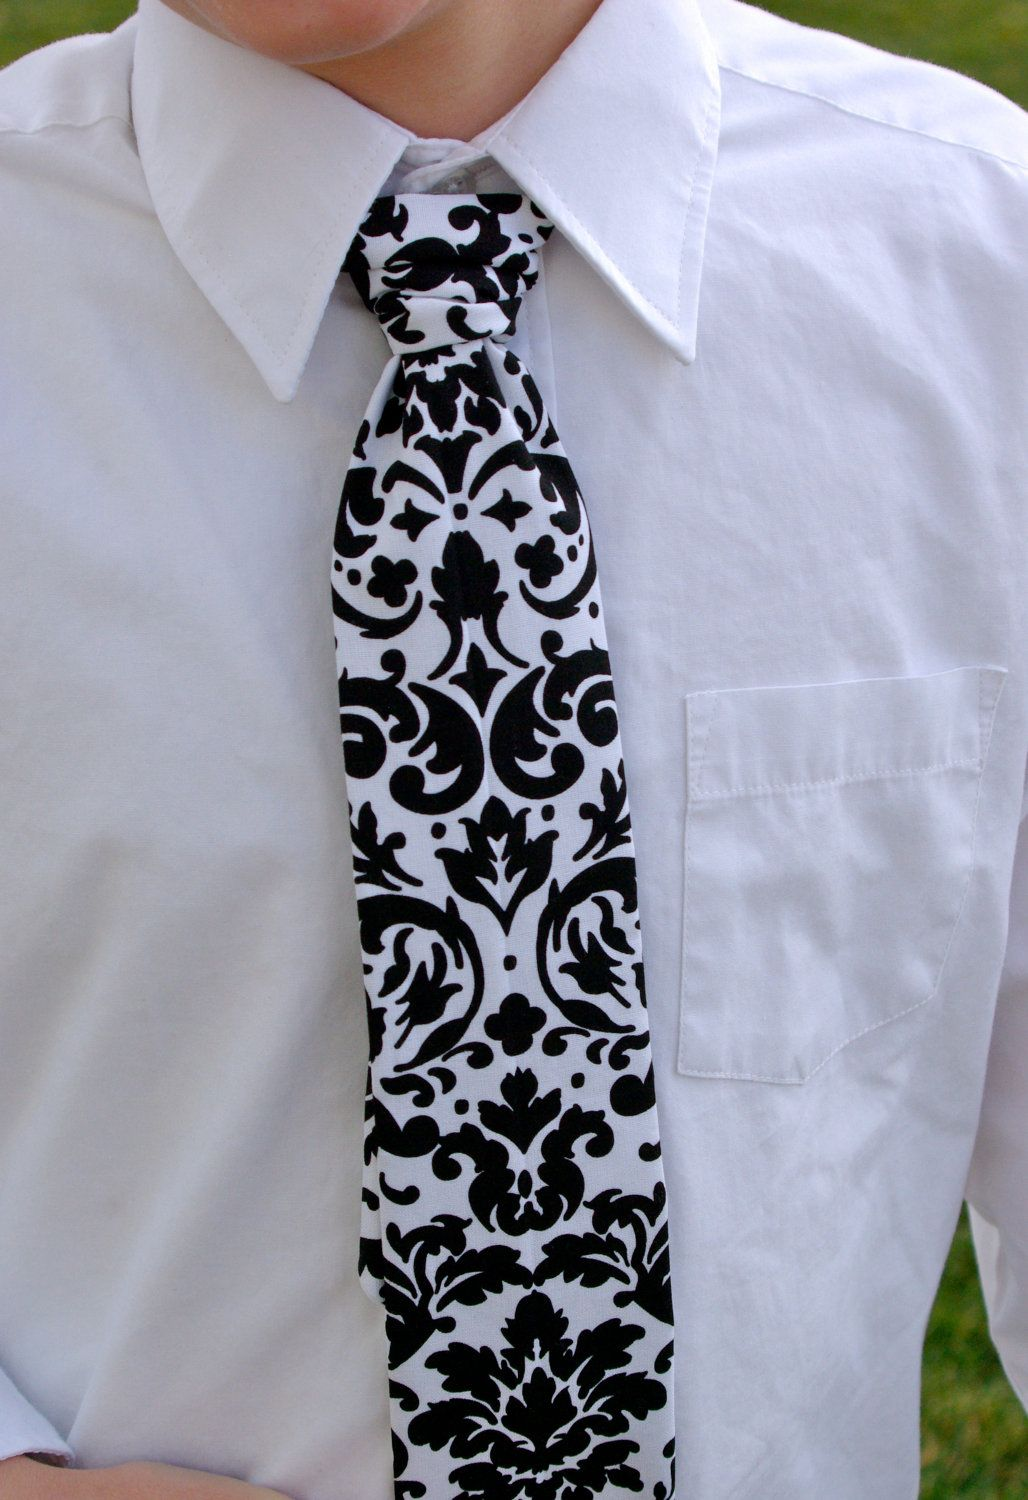 5cb0d1361a4c Black and White Damask Tie for Newborns to Boys ages 10/11 by GreenStyle.  $19.00, via Etsy.